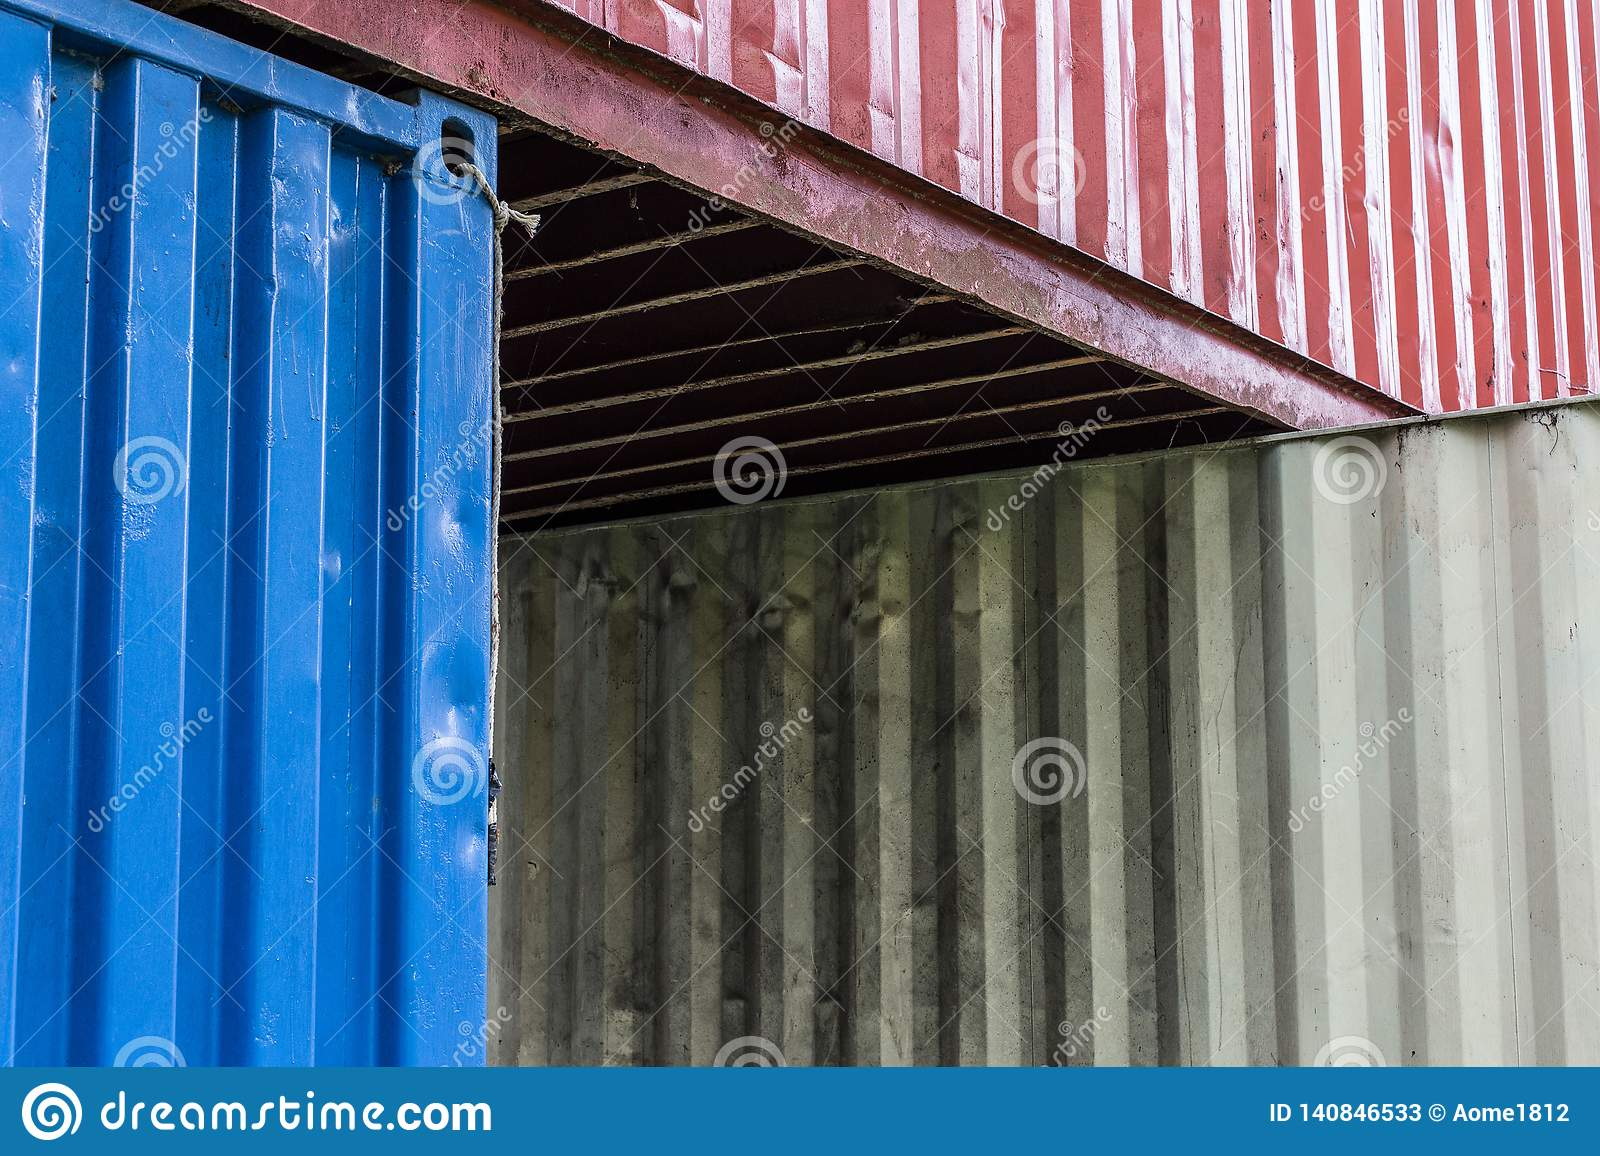 Containers are stacked